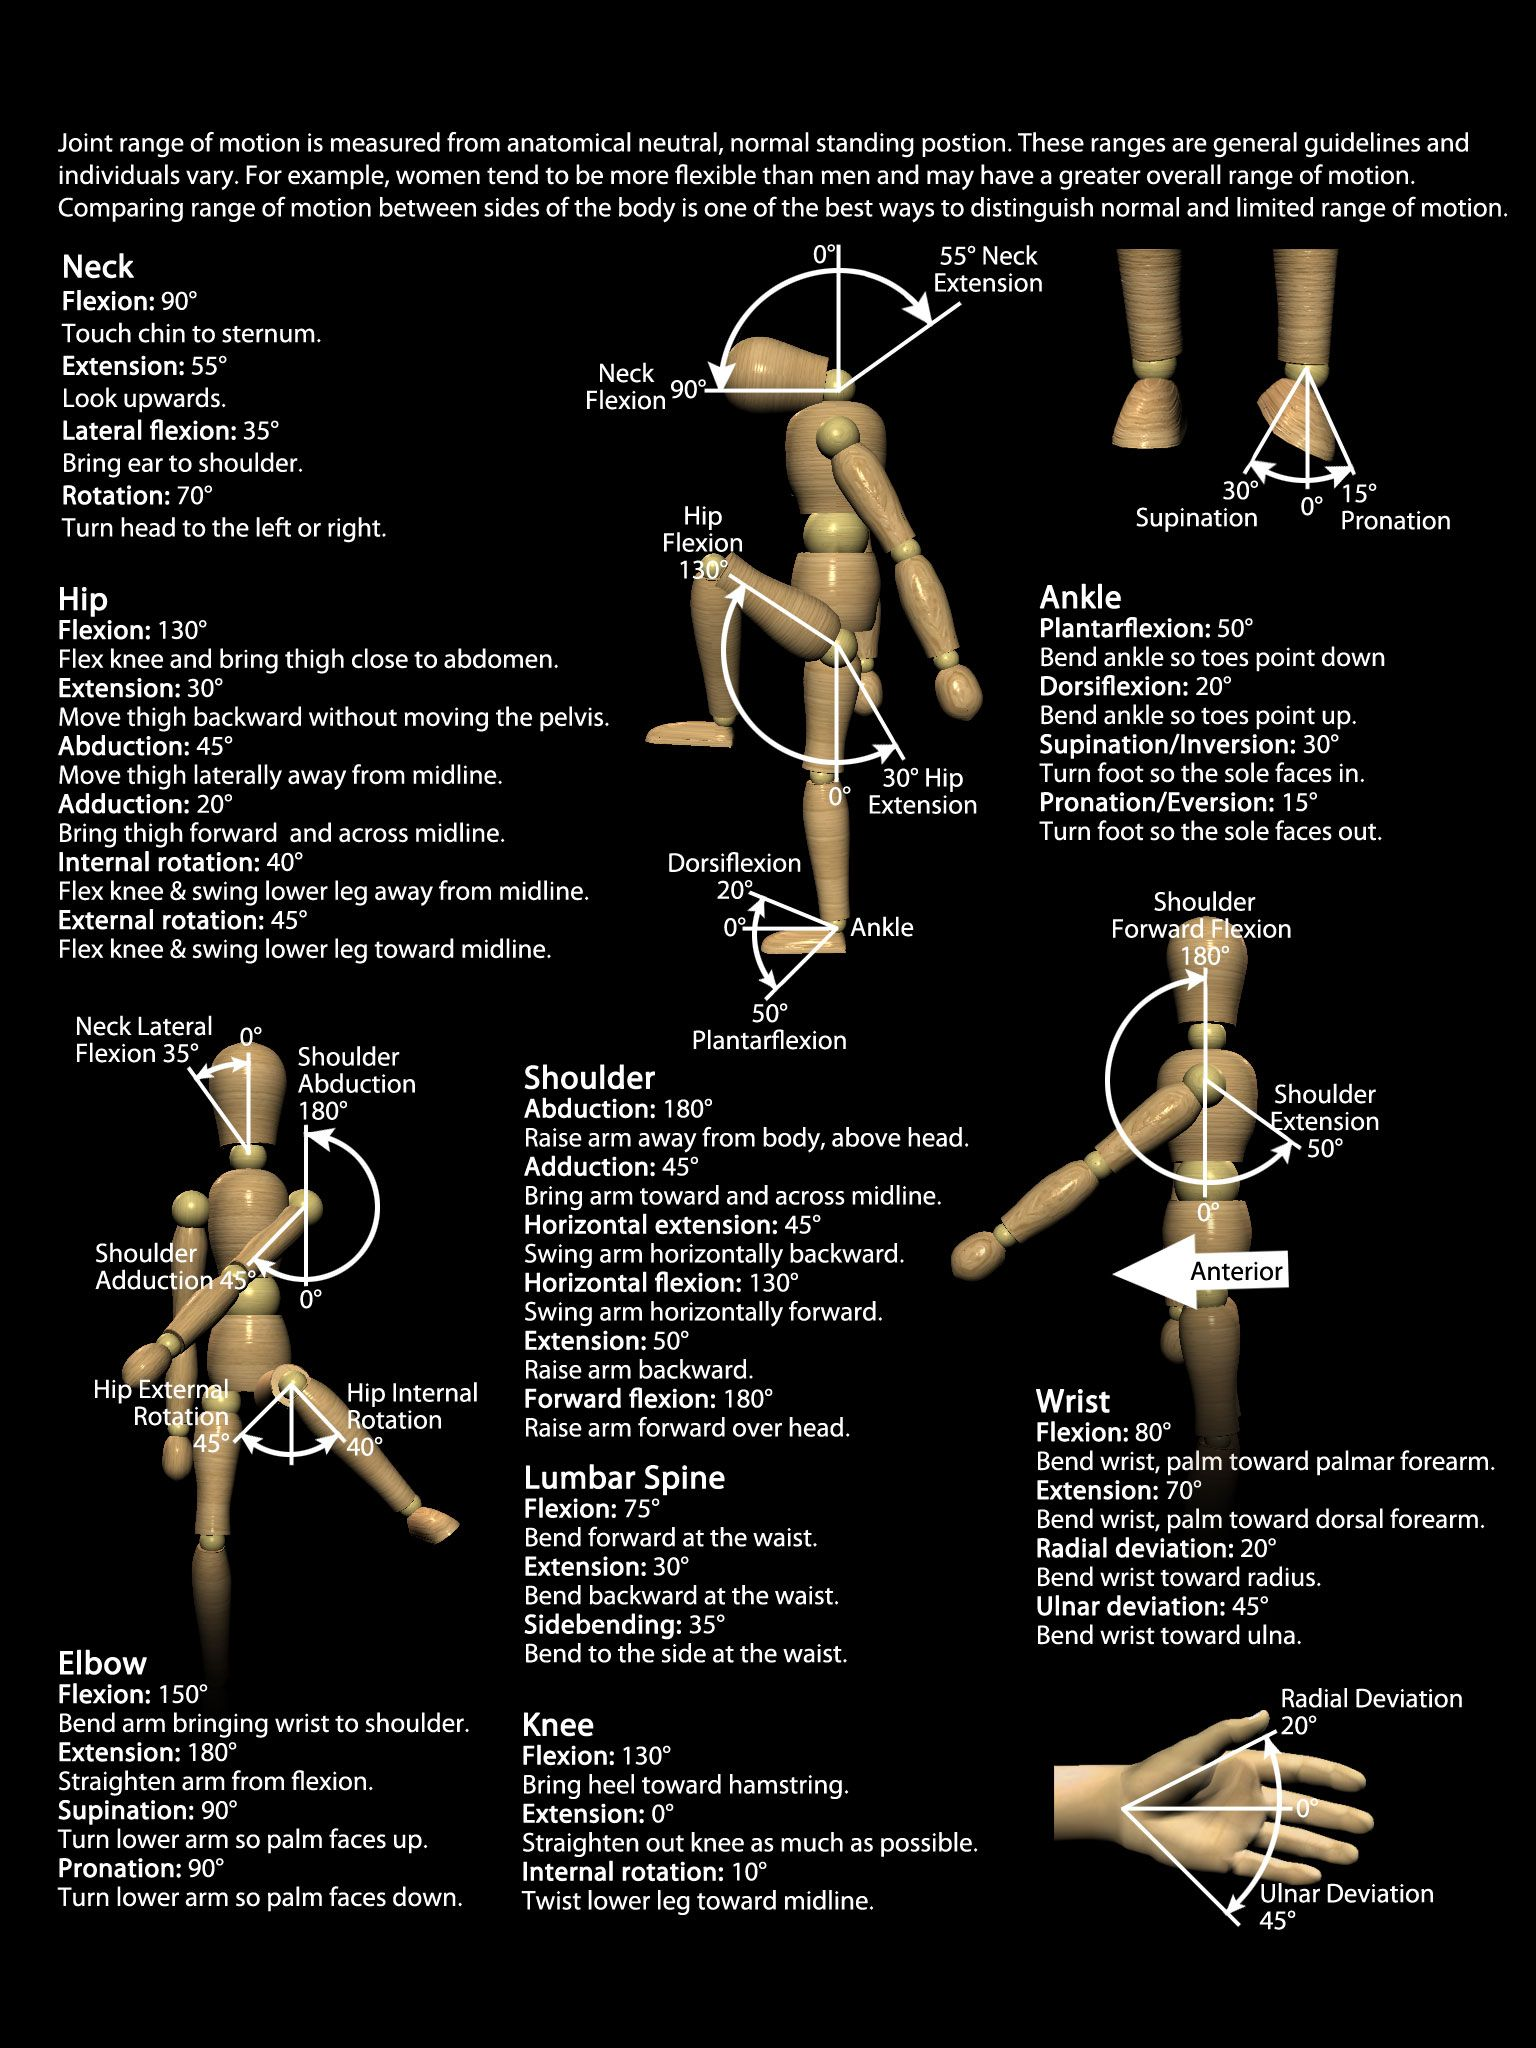 Anatomy of Joint Range of Motion. All the numbers in one